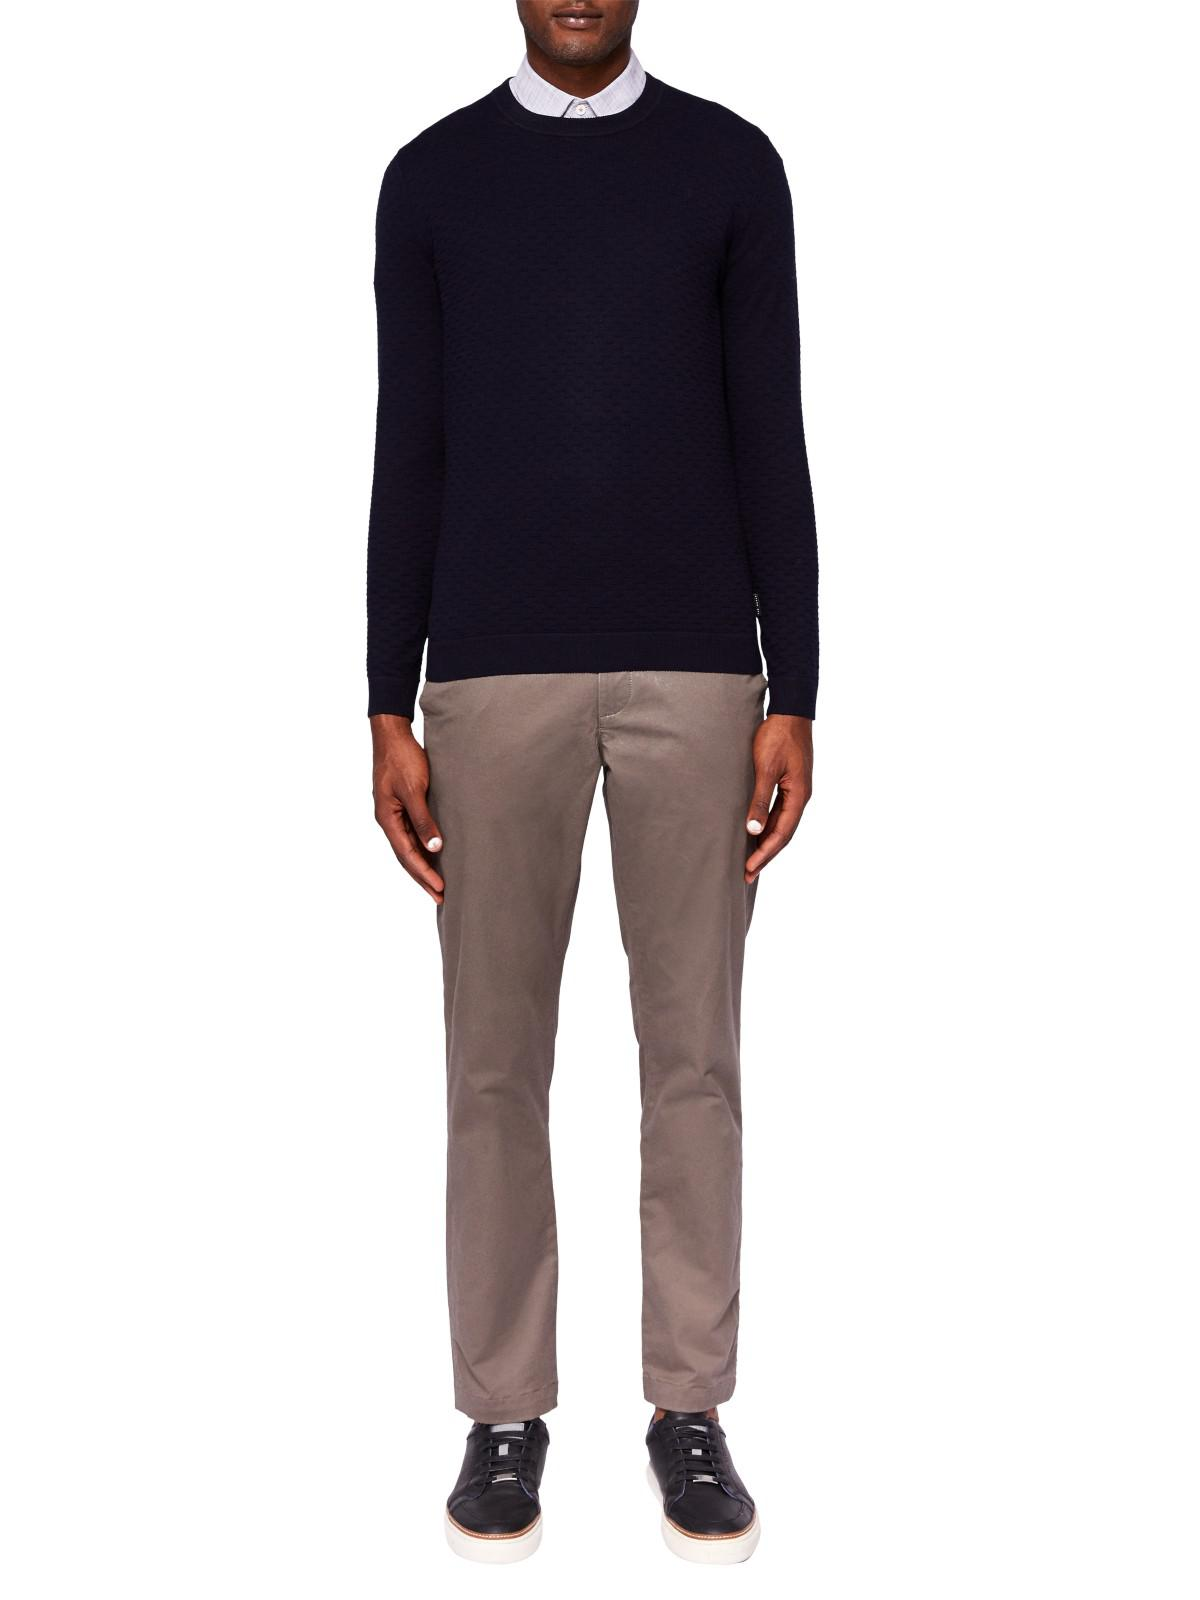 Ted Baker Cotton Clascor Chino Trousers in Natural for Men